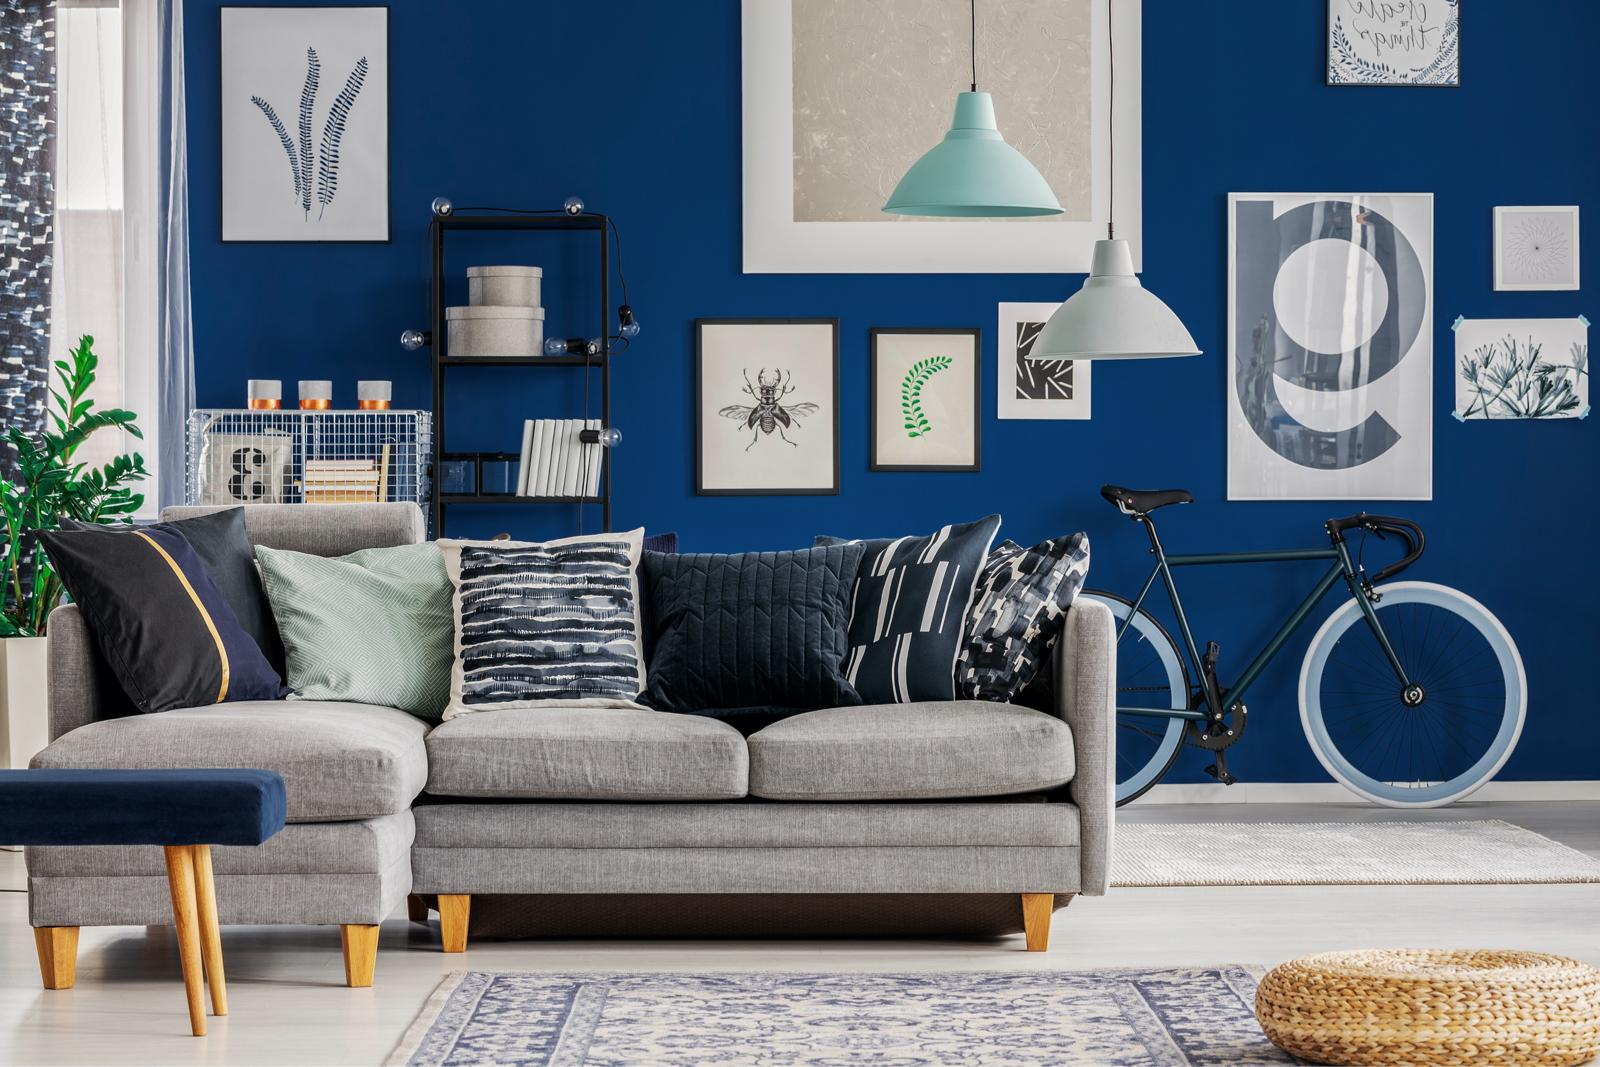 Maximalism Style And Why We Love It 8, Paneling Factory Of Virginia